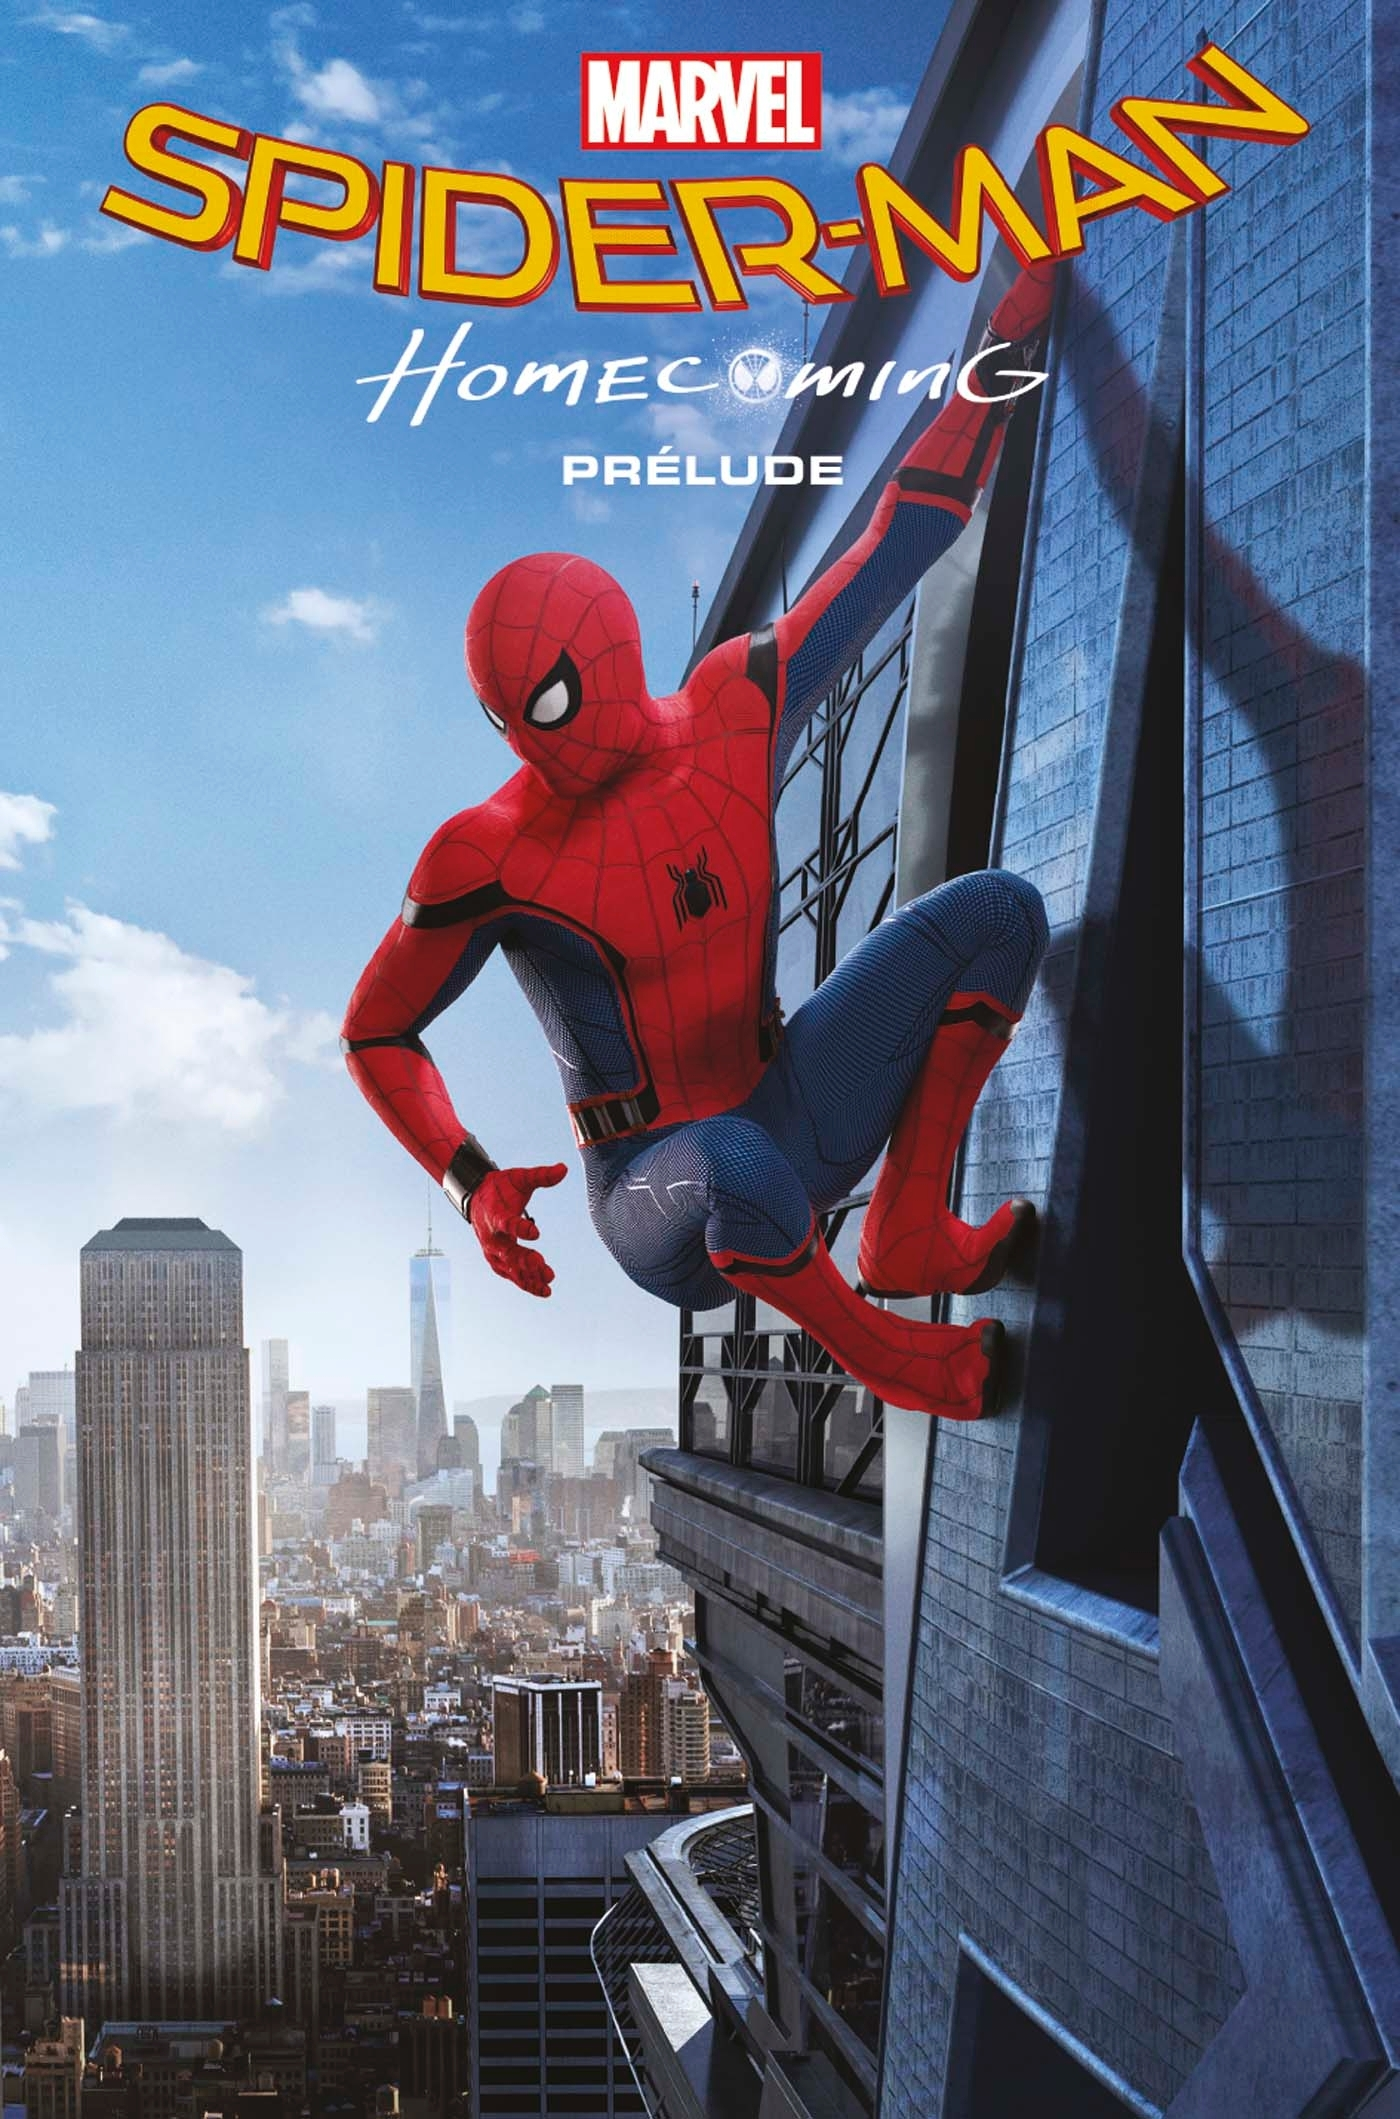 SPIDER-MAN HOMECOMING: PRELUDE